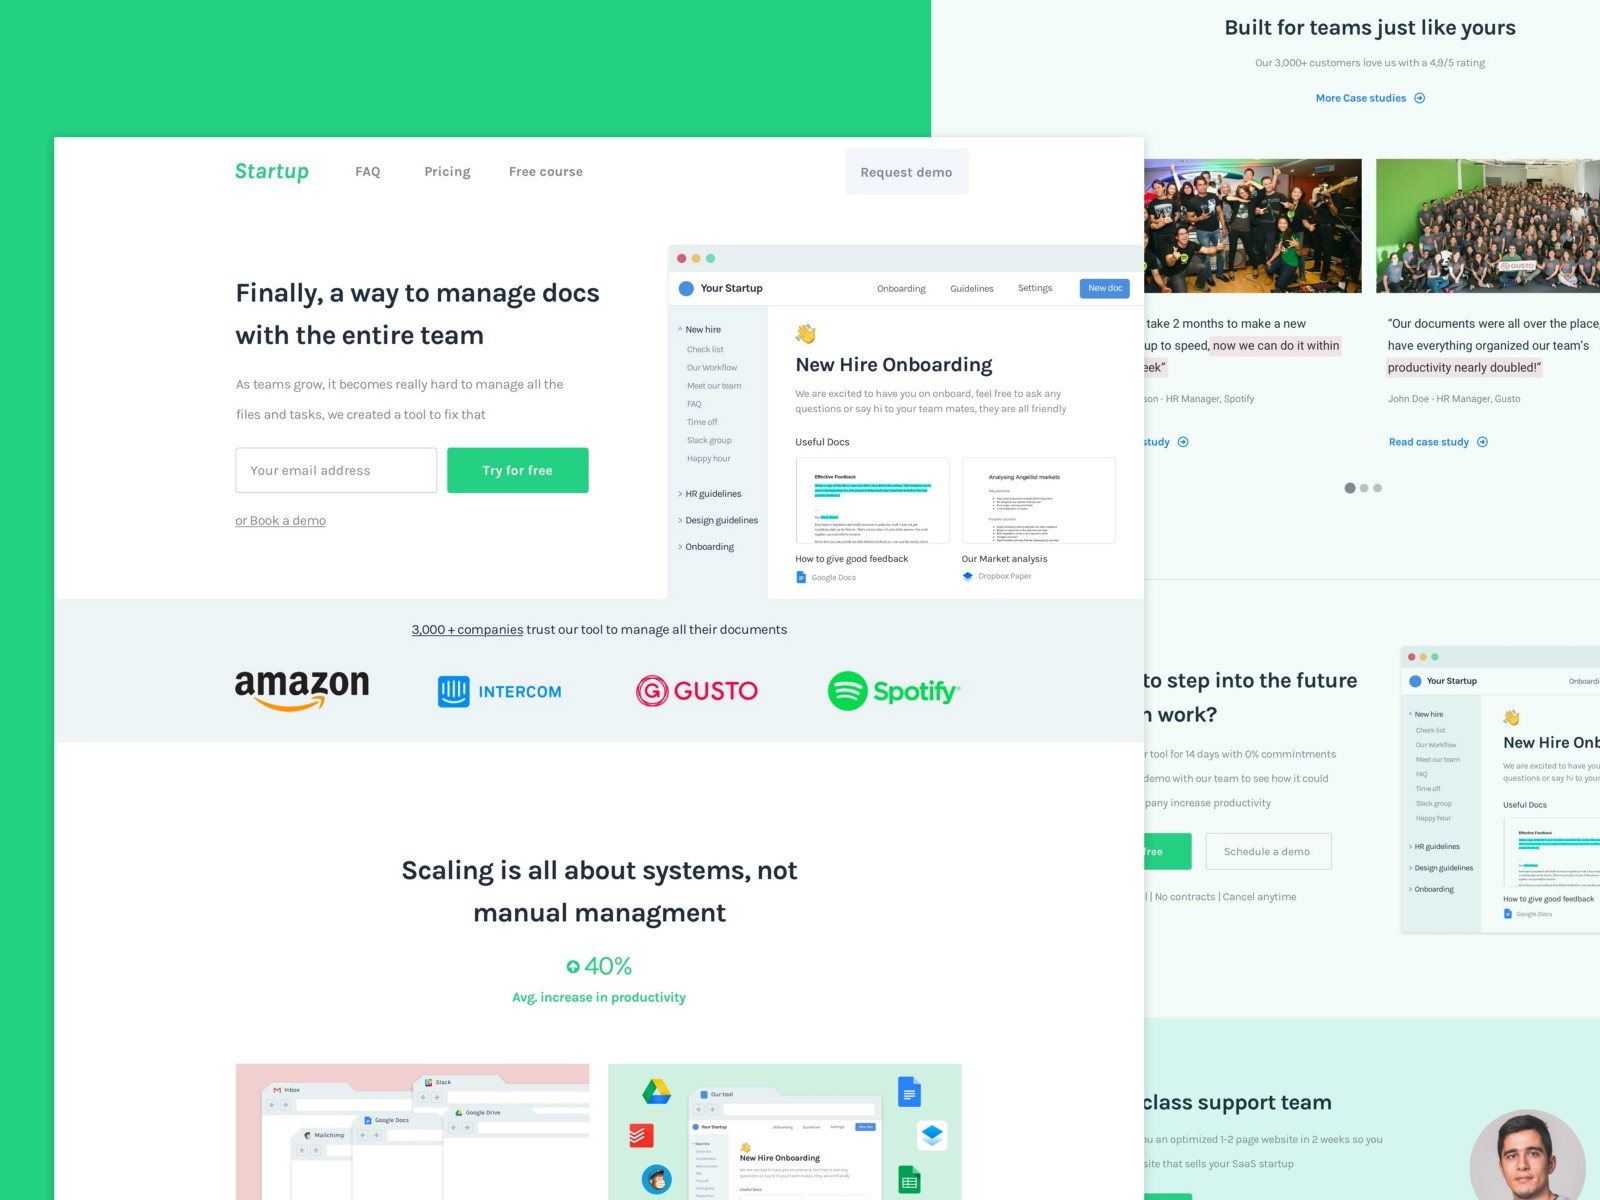 /breaking-down-a-conversion-driven-saas-landing-page-designed-to-capture-more-leads-584c569f9565 feature image